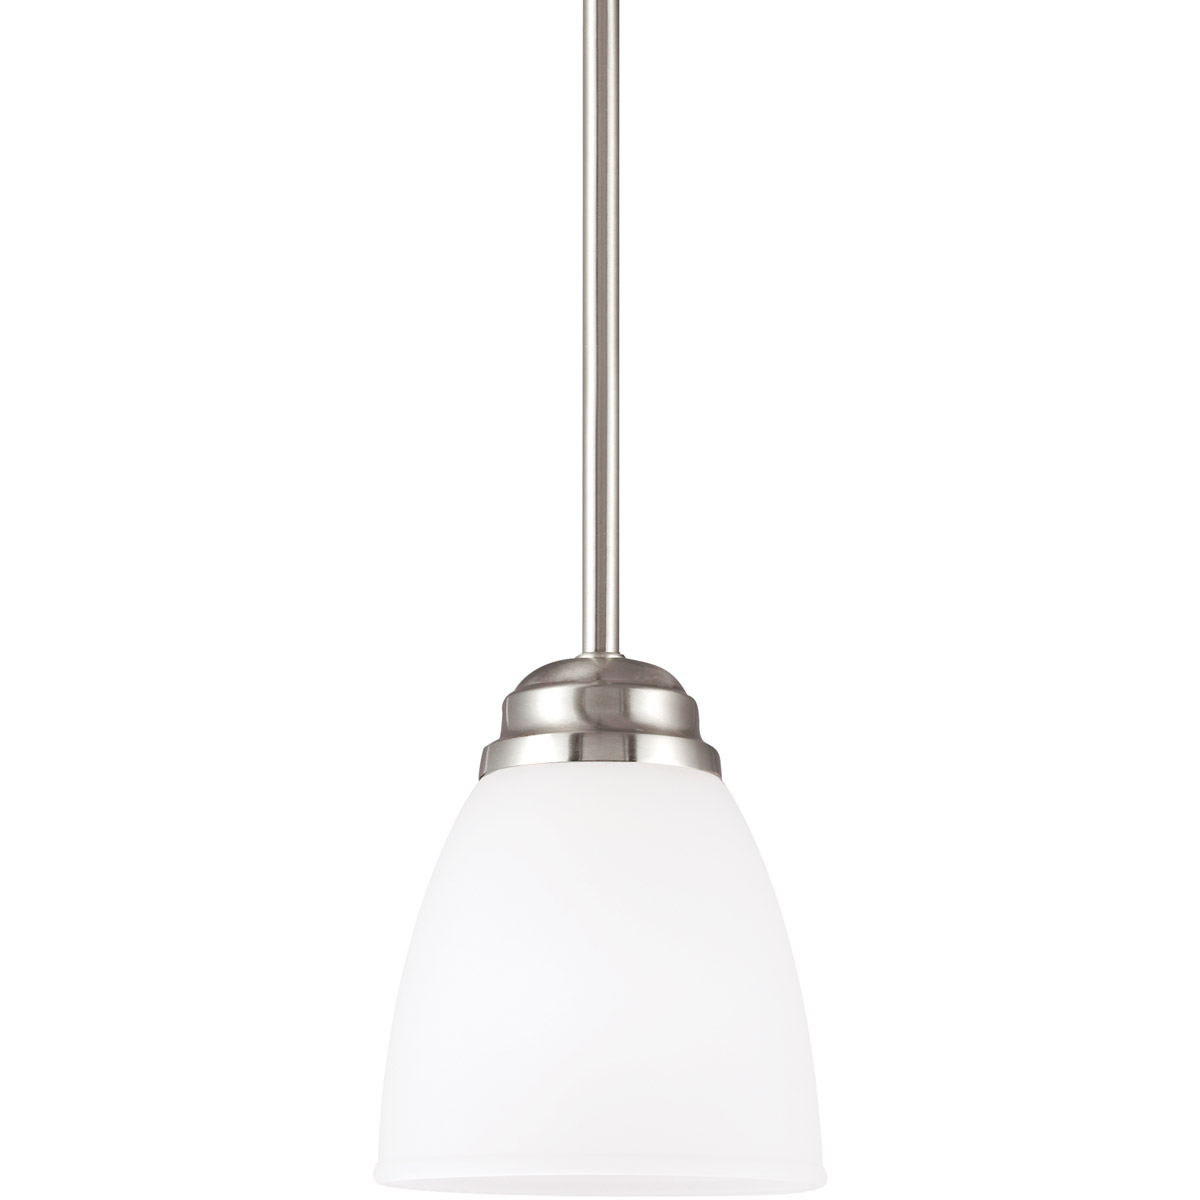 Sea Gull Northbrook 1 Light Mini Pendant in Brushed Nickel 6112401-962